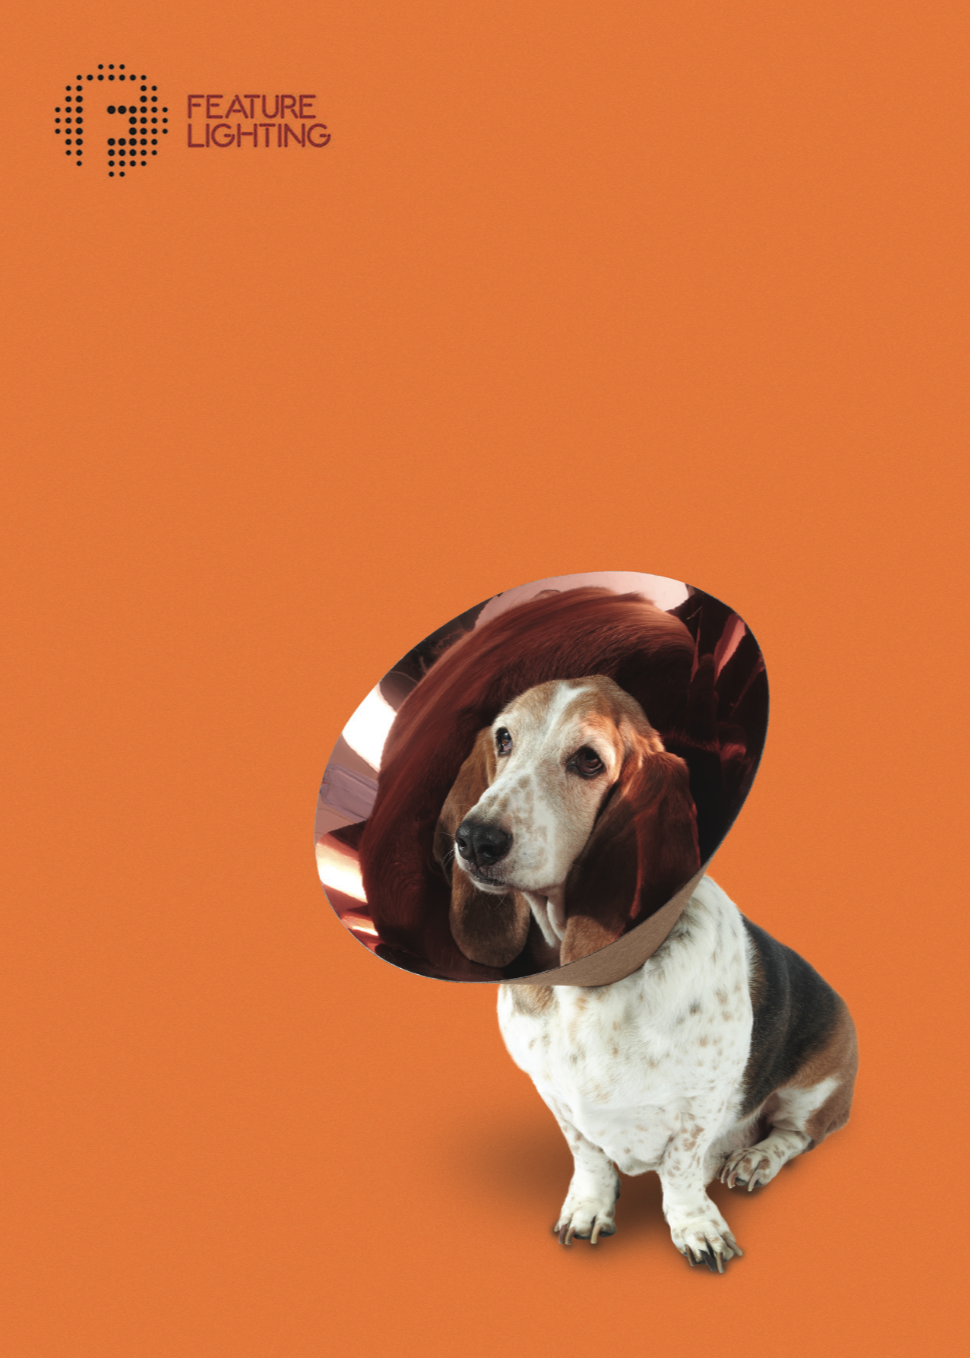 Buster - Cone of Shame lampshade